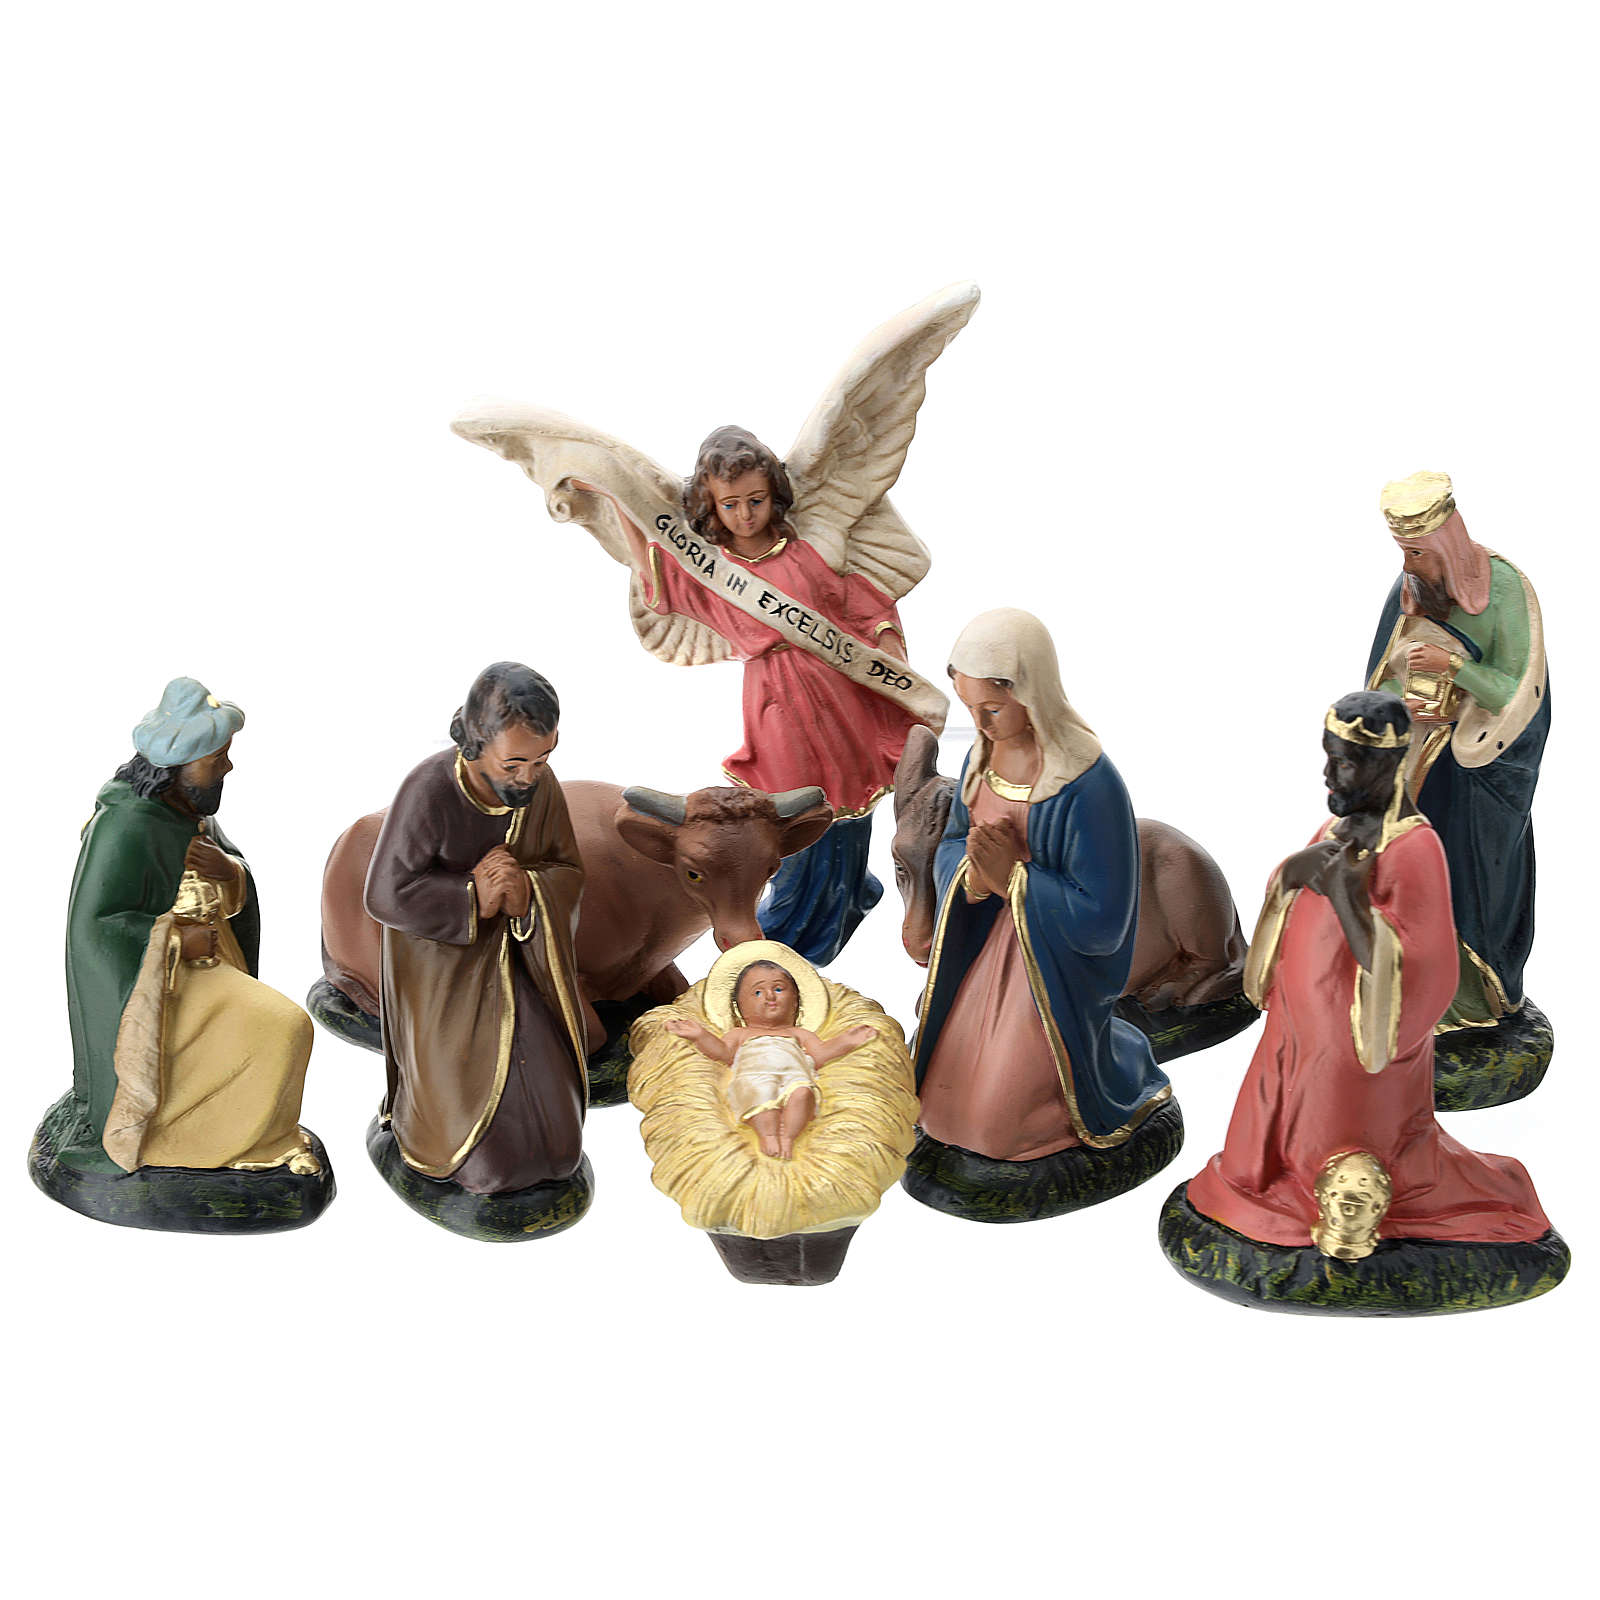 Arte Barsanti Nativity Scene with 9 hand-painted characters in plaster 15 cm 4